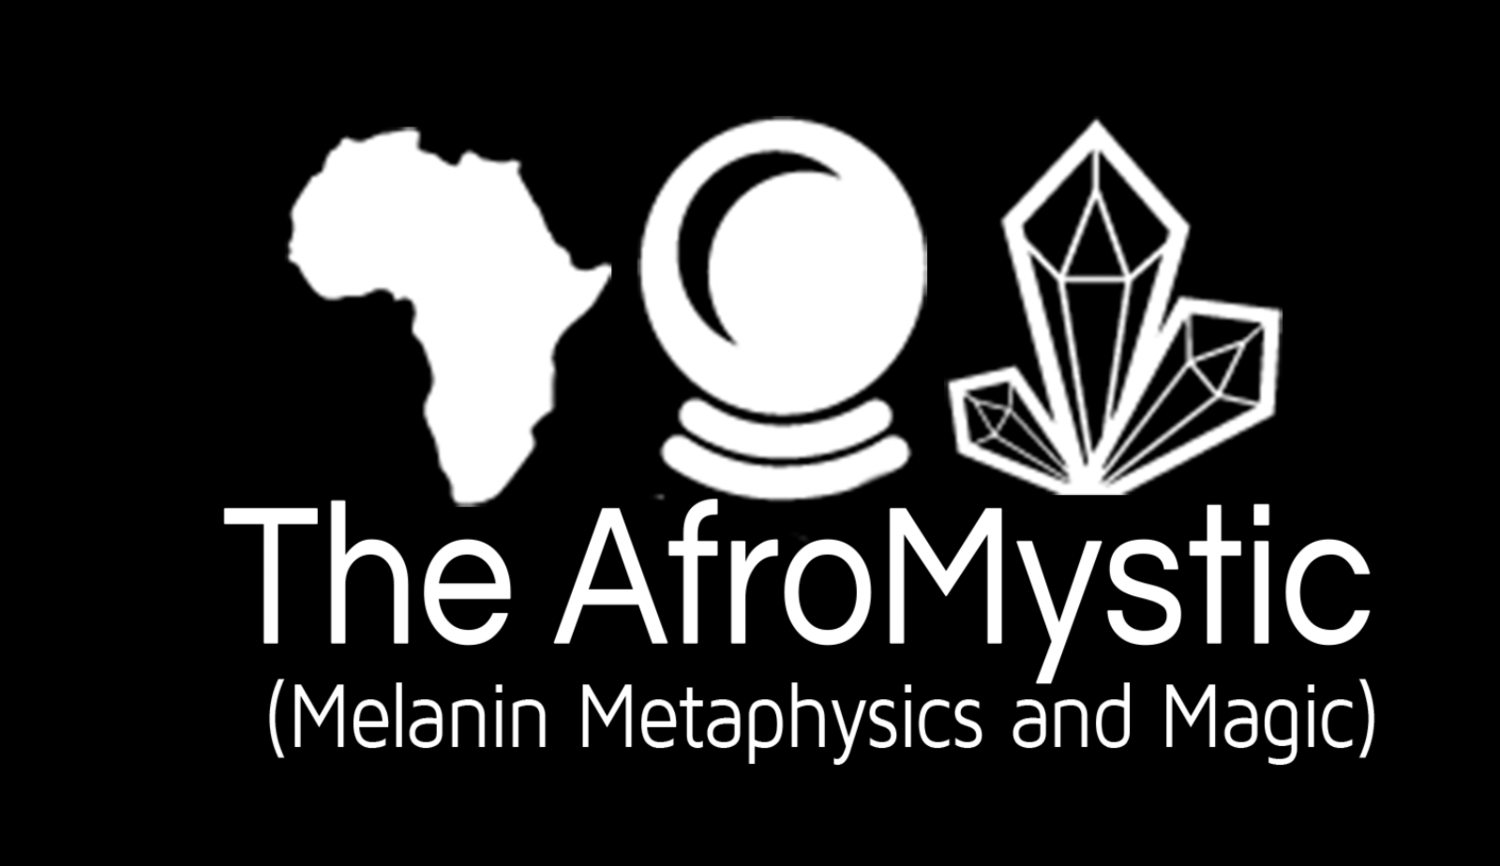 The AfroMystic